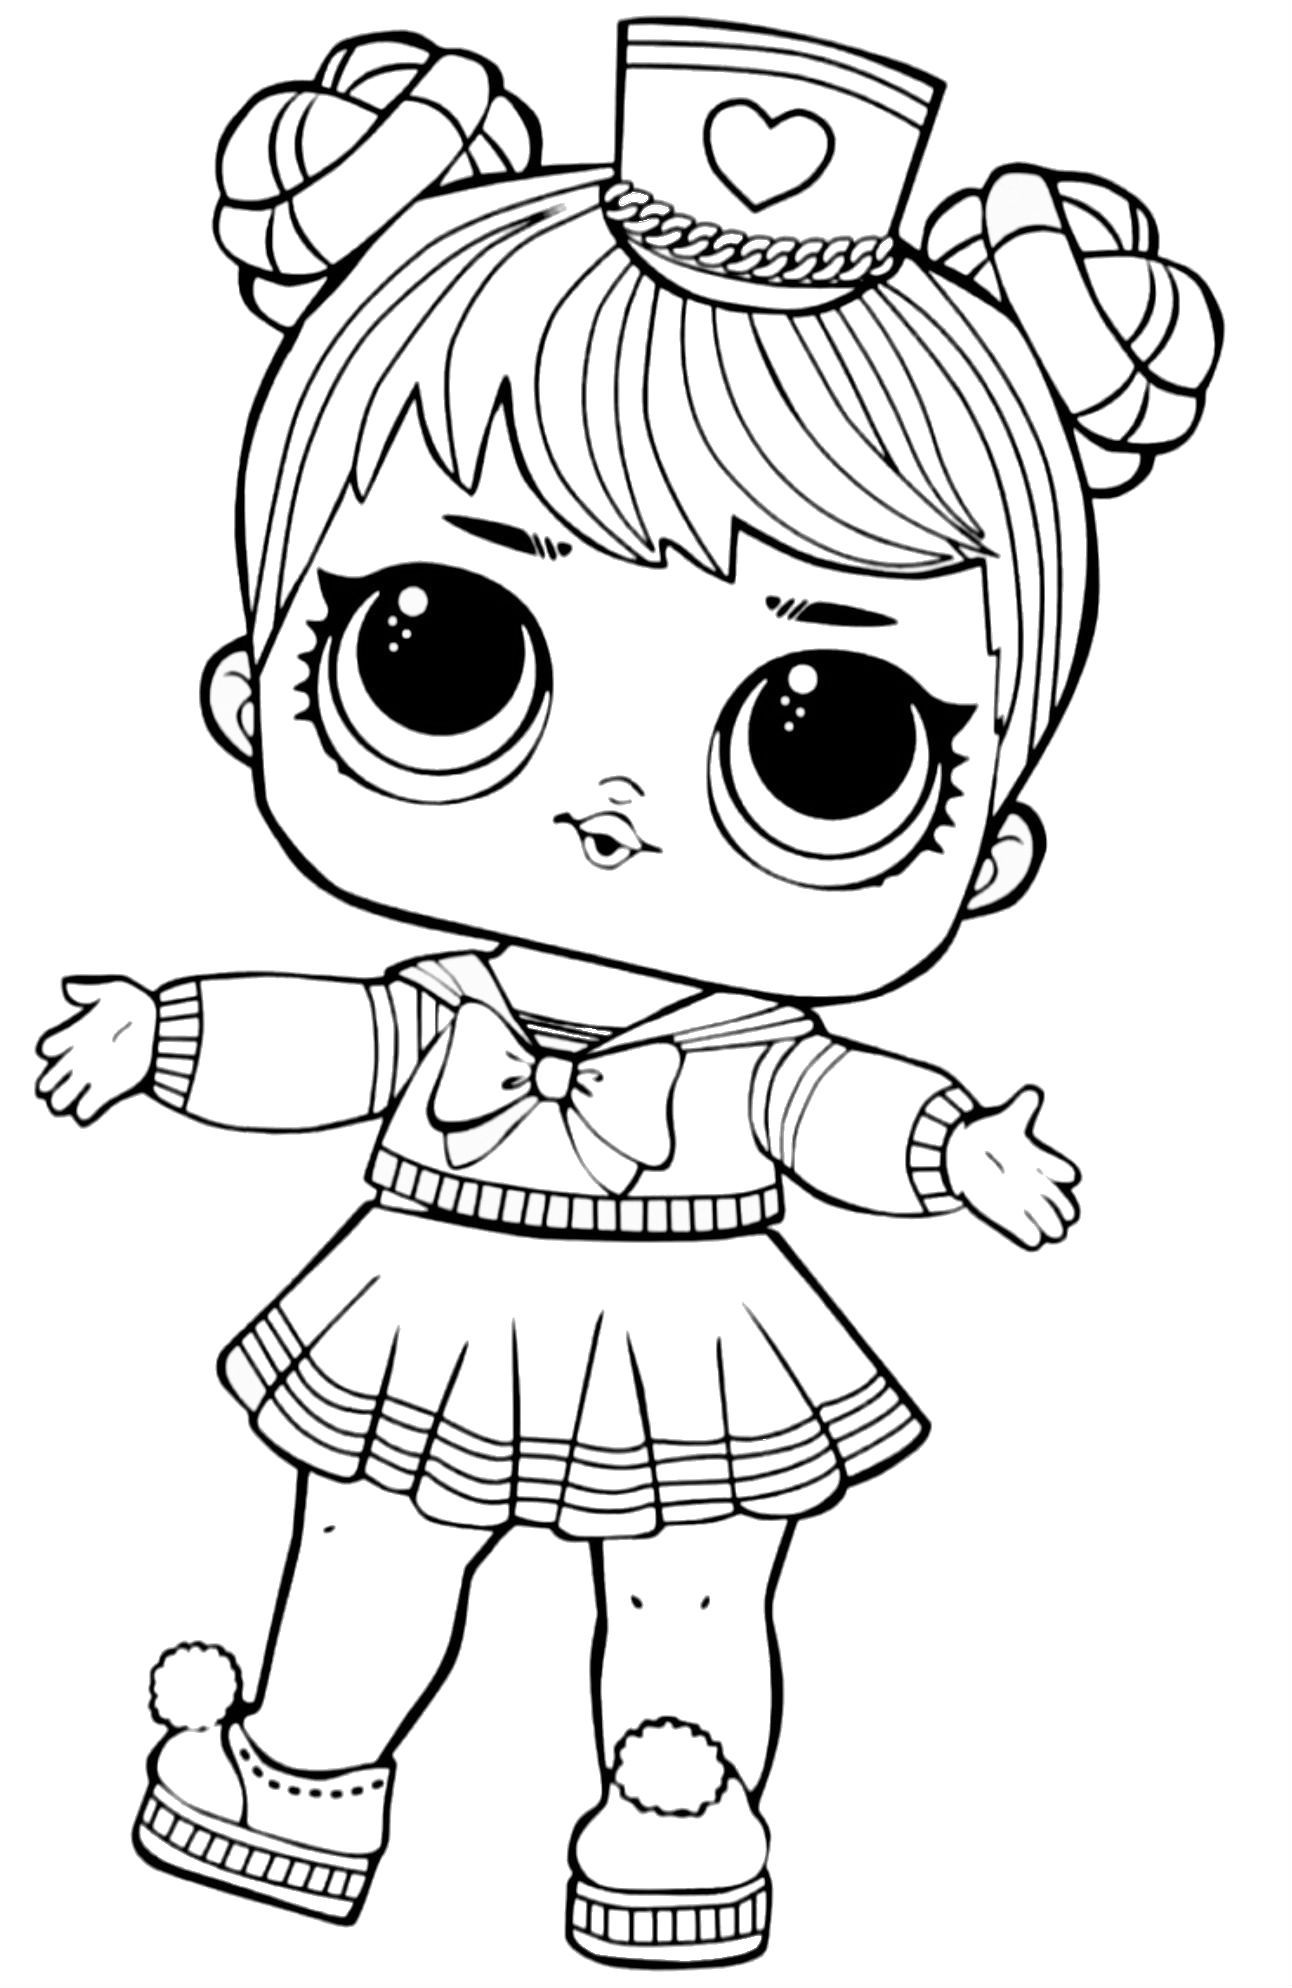 Lol Surprise Doll Coloring Sailor Qt Lol Dolls Cool Coloring Pages Barbie Coloring Pages